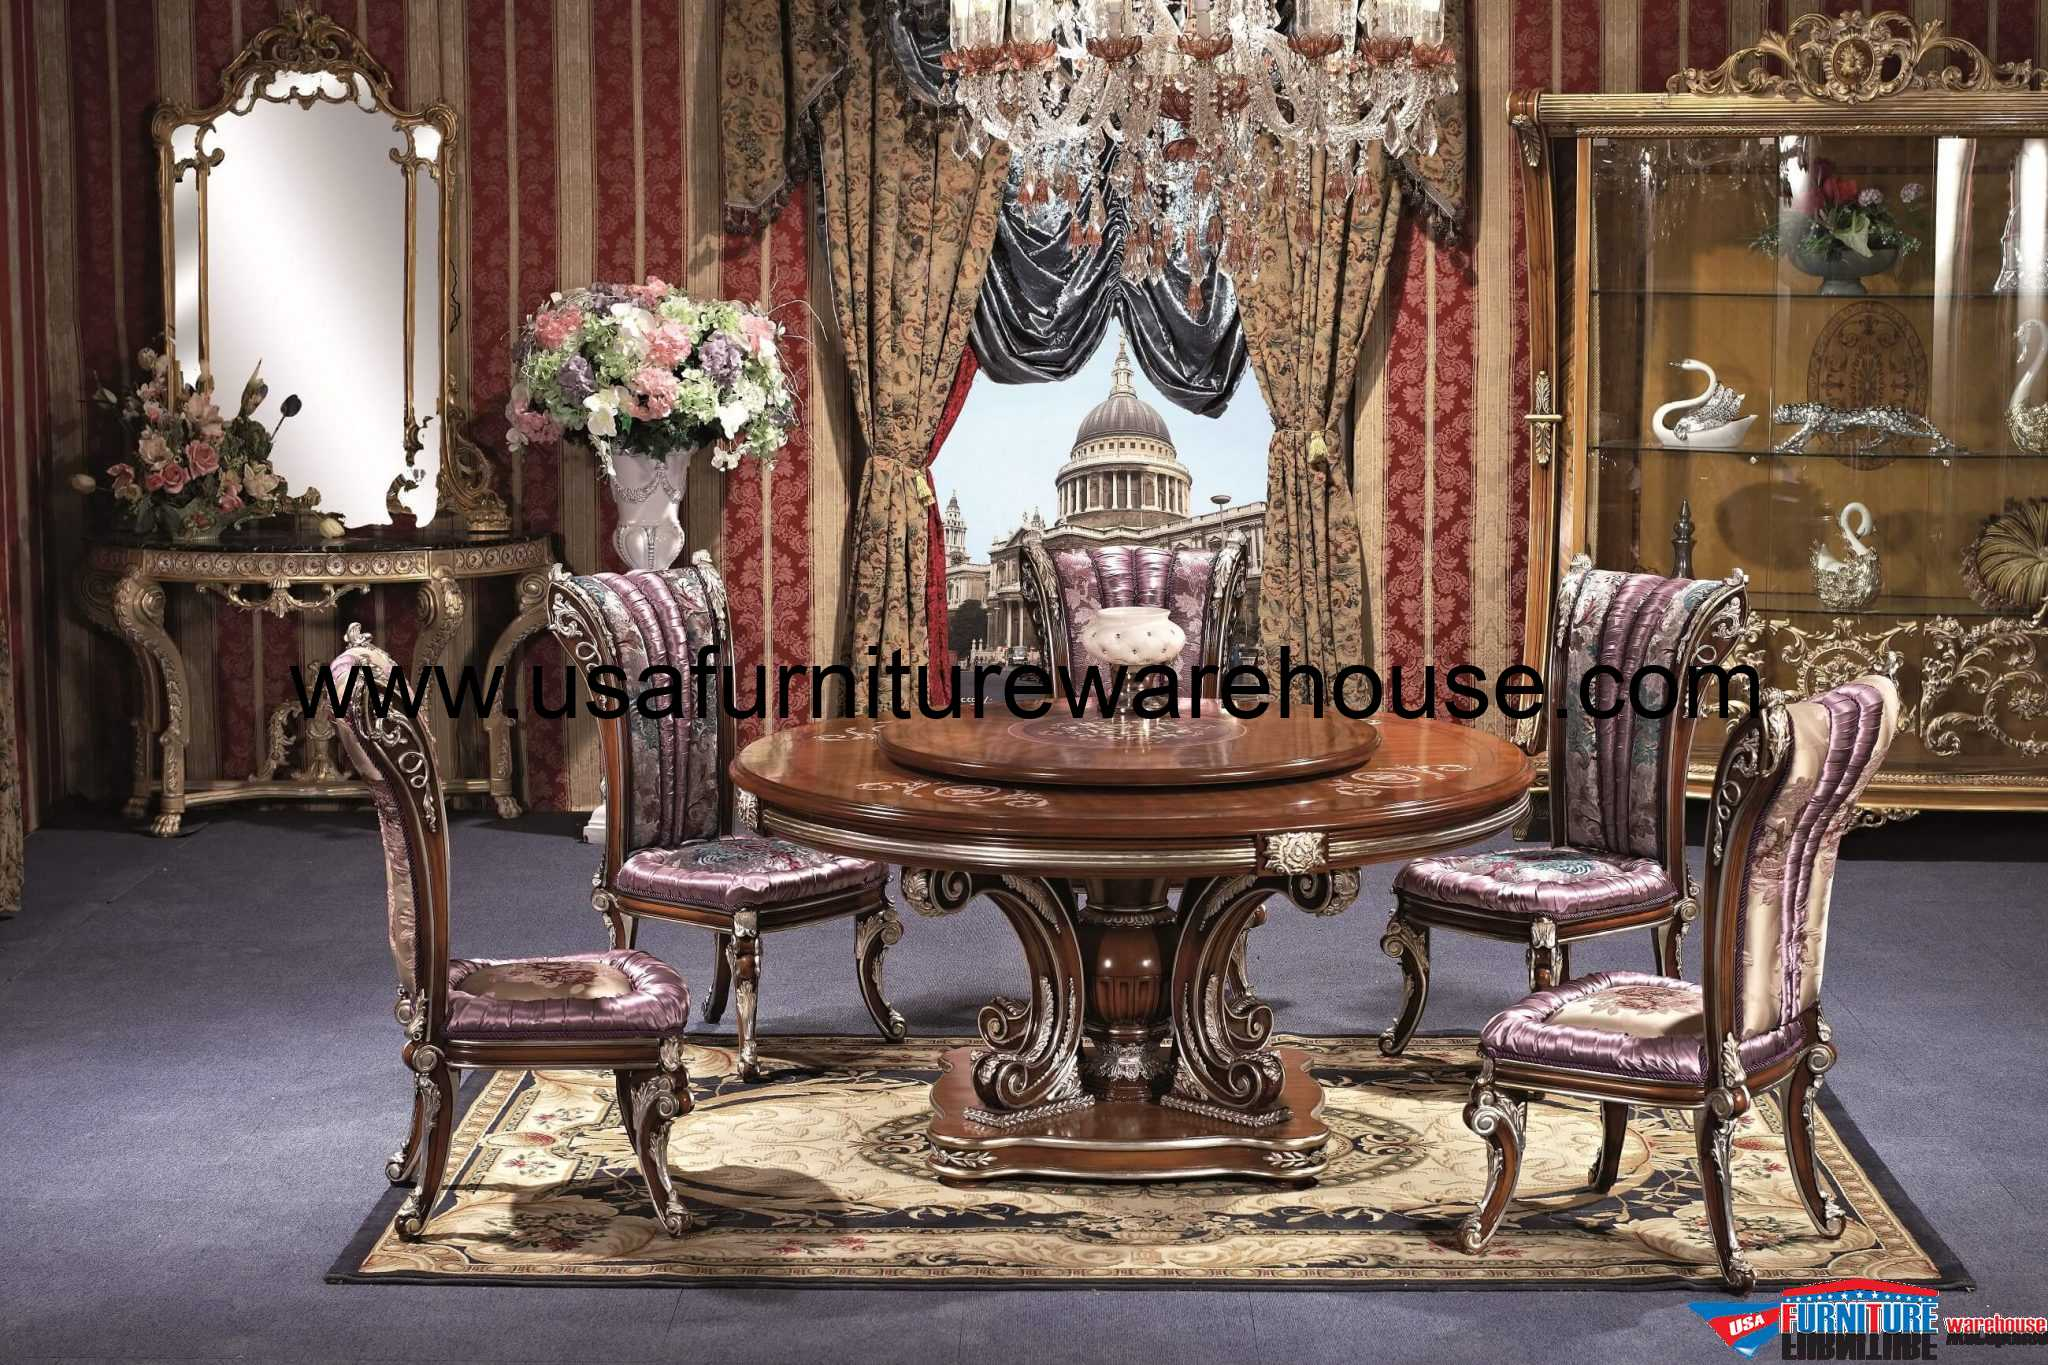 7 Piece George Versailles Luxury Round Dining Set : 7 Piece George Versailles Luxury Round Dining Set from www.usafurniturewarehouse.com size 2600 x 1733 jpeg 1660kB